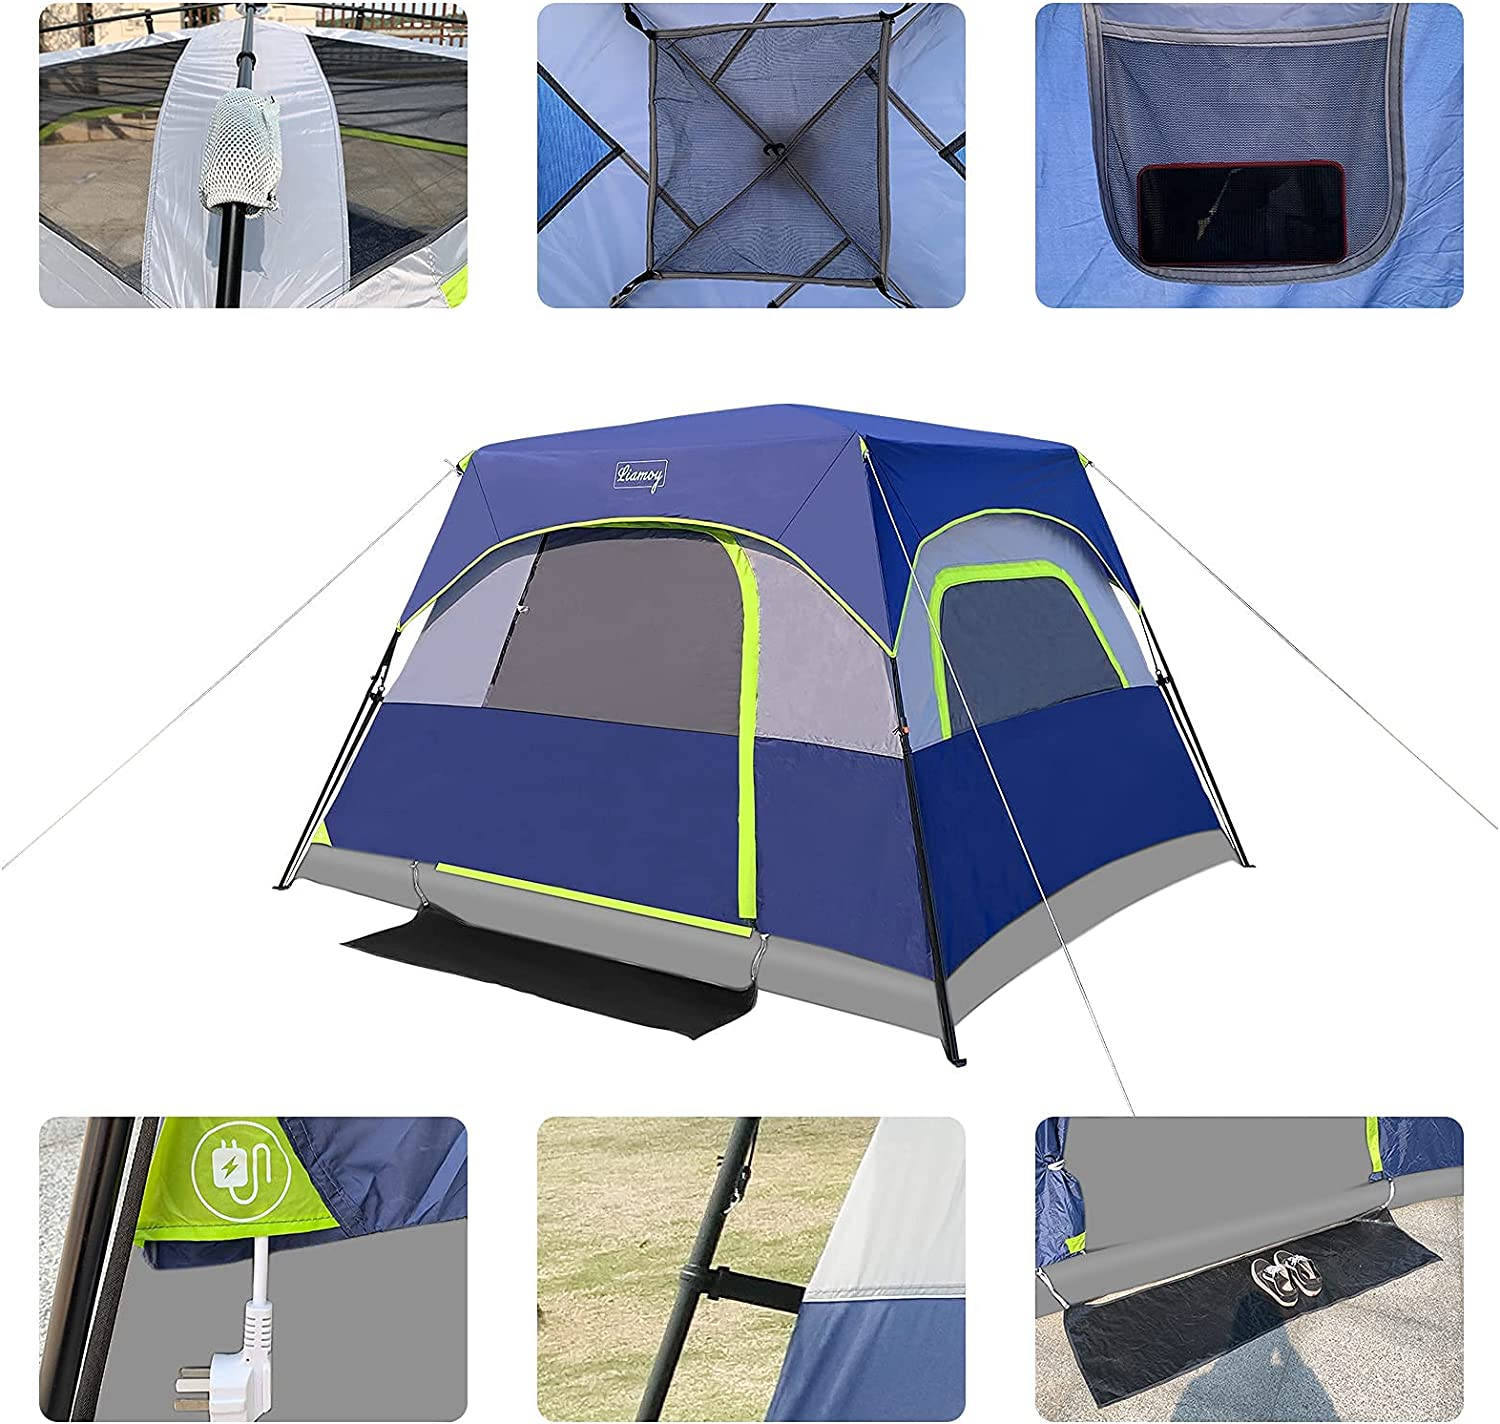 Buy 6 Person Tent Instant For Camping Waterproof Windproof Family 60 Seconds Easy Setup Cabin Tent With Top Rainfly Double Layer 4 Large Mesh Windows 2 Mesh Door Provide 2 Pcs Gate Mat Camping Tent 10 X9 X78 H Online In Indonesia